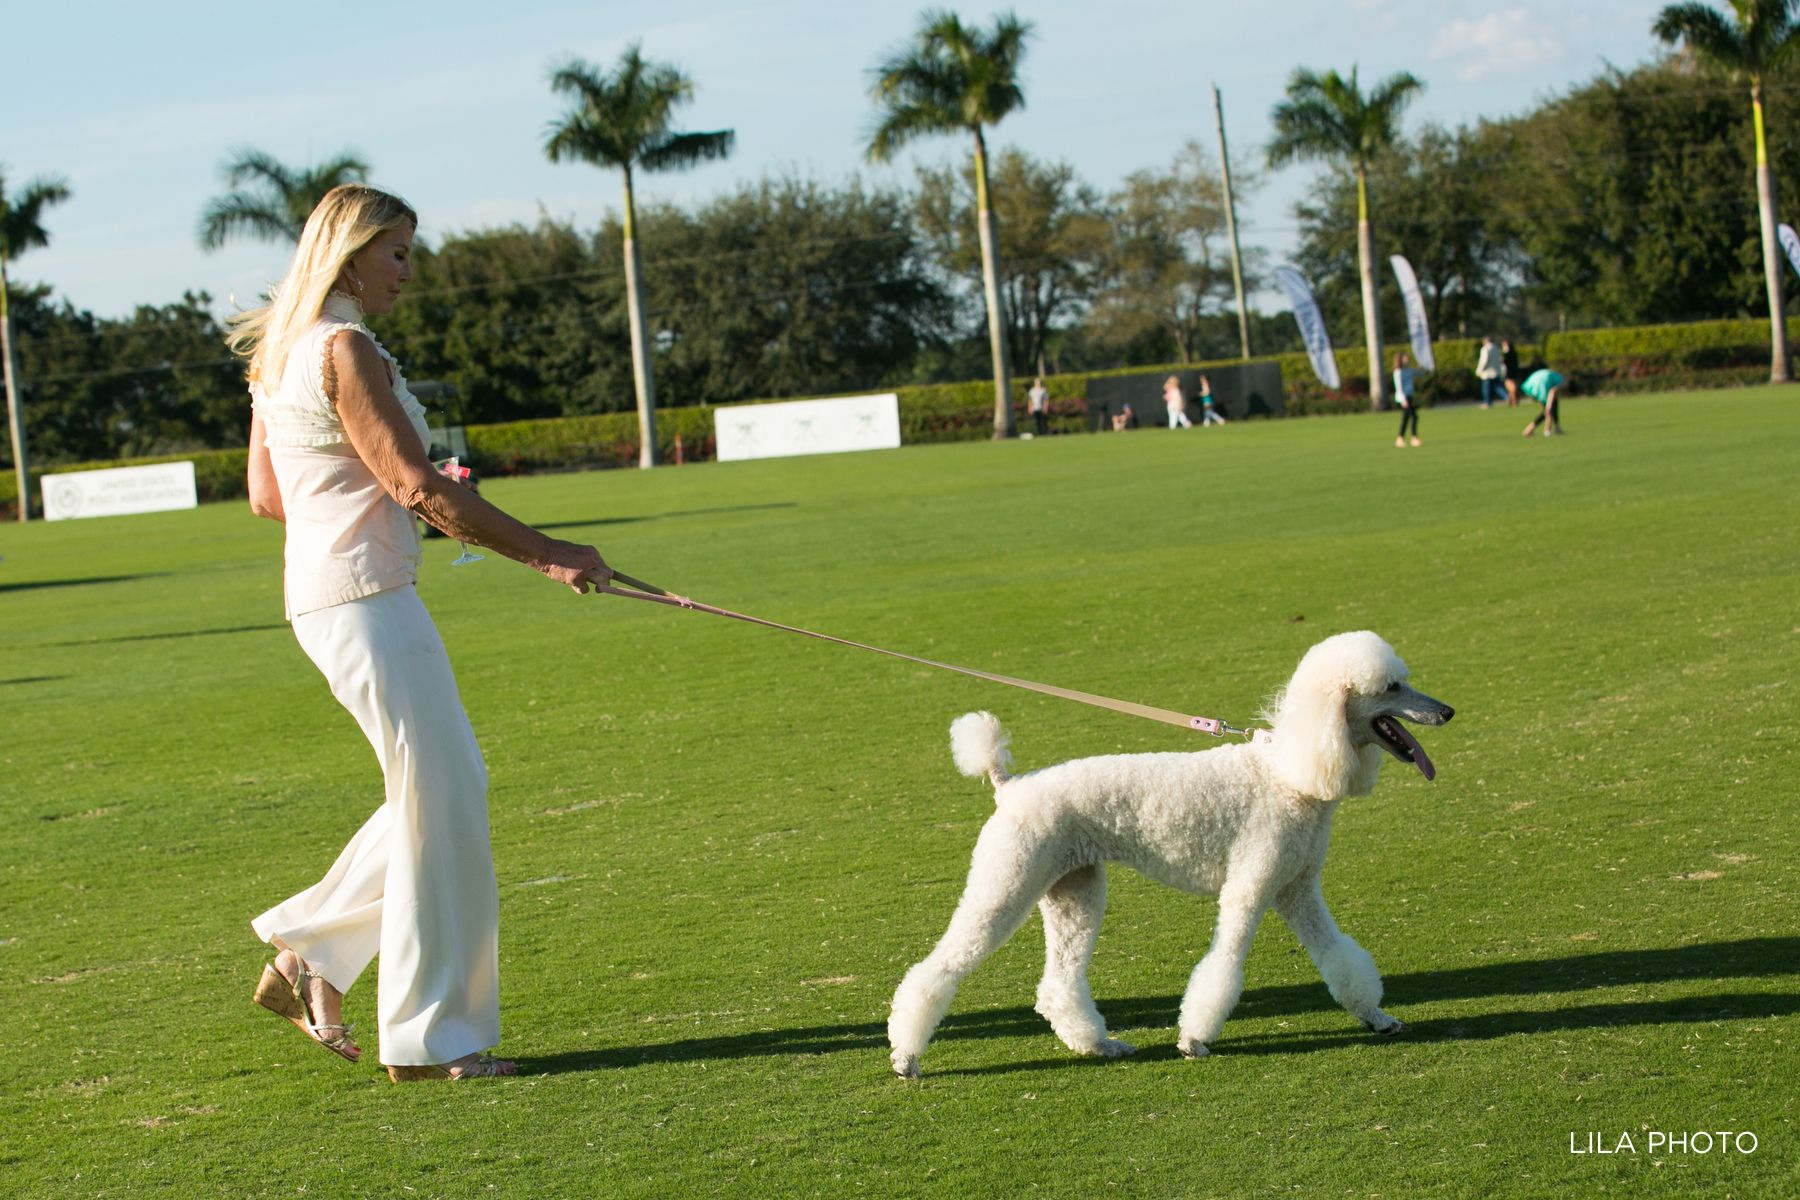 Poodle leads the way